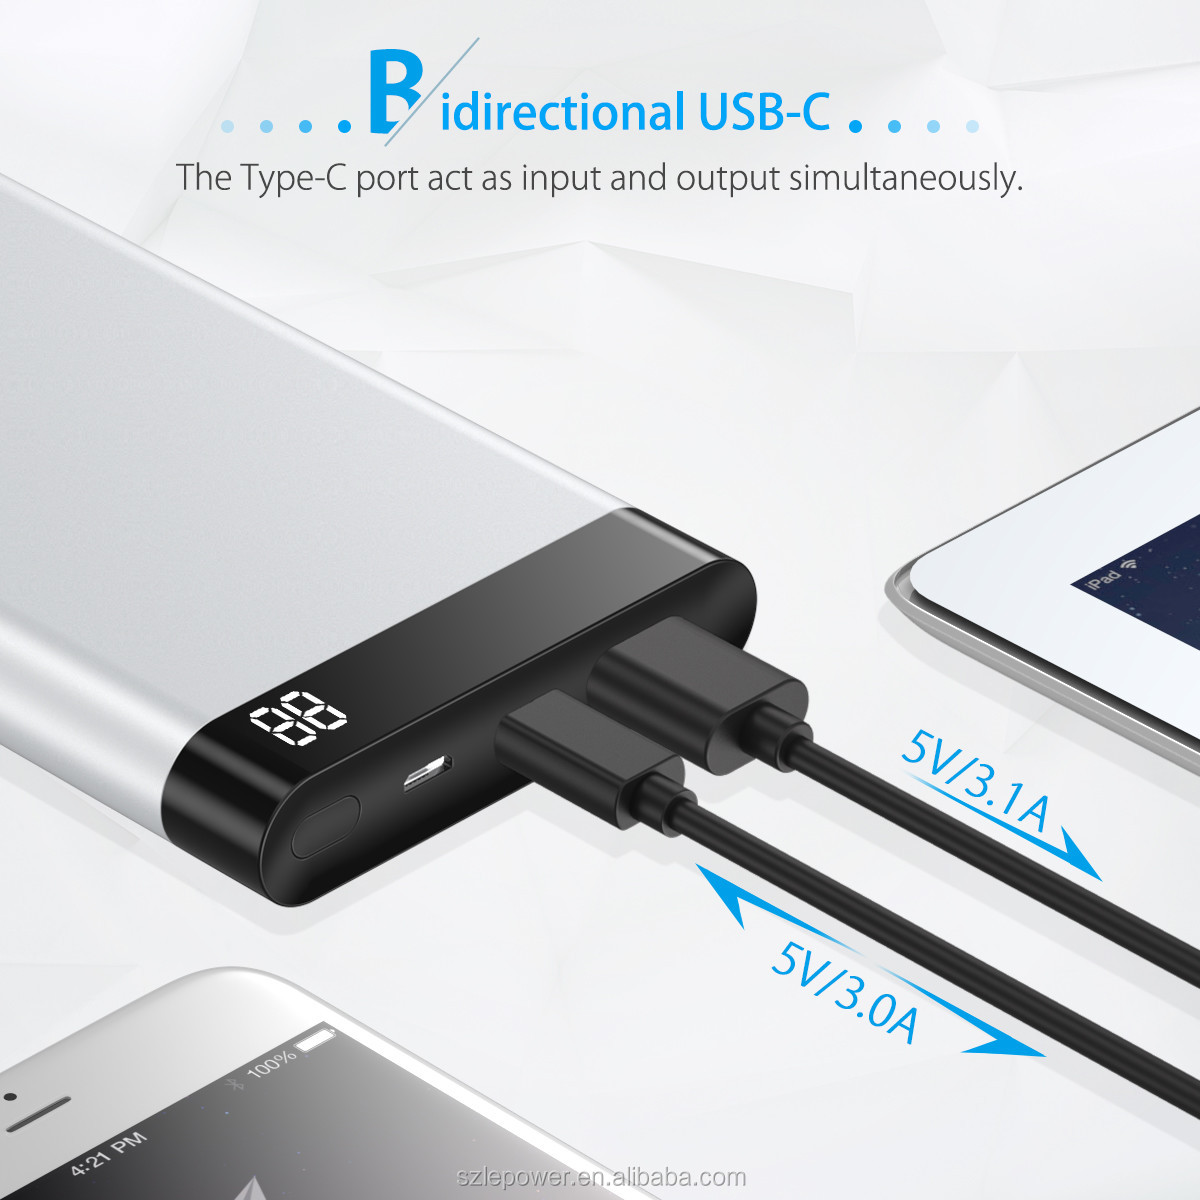 Poweradd 10000mAh Mobile Power Bank with USB-C Input and Output 5V/3A External Battery Charger